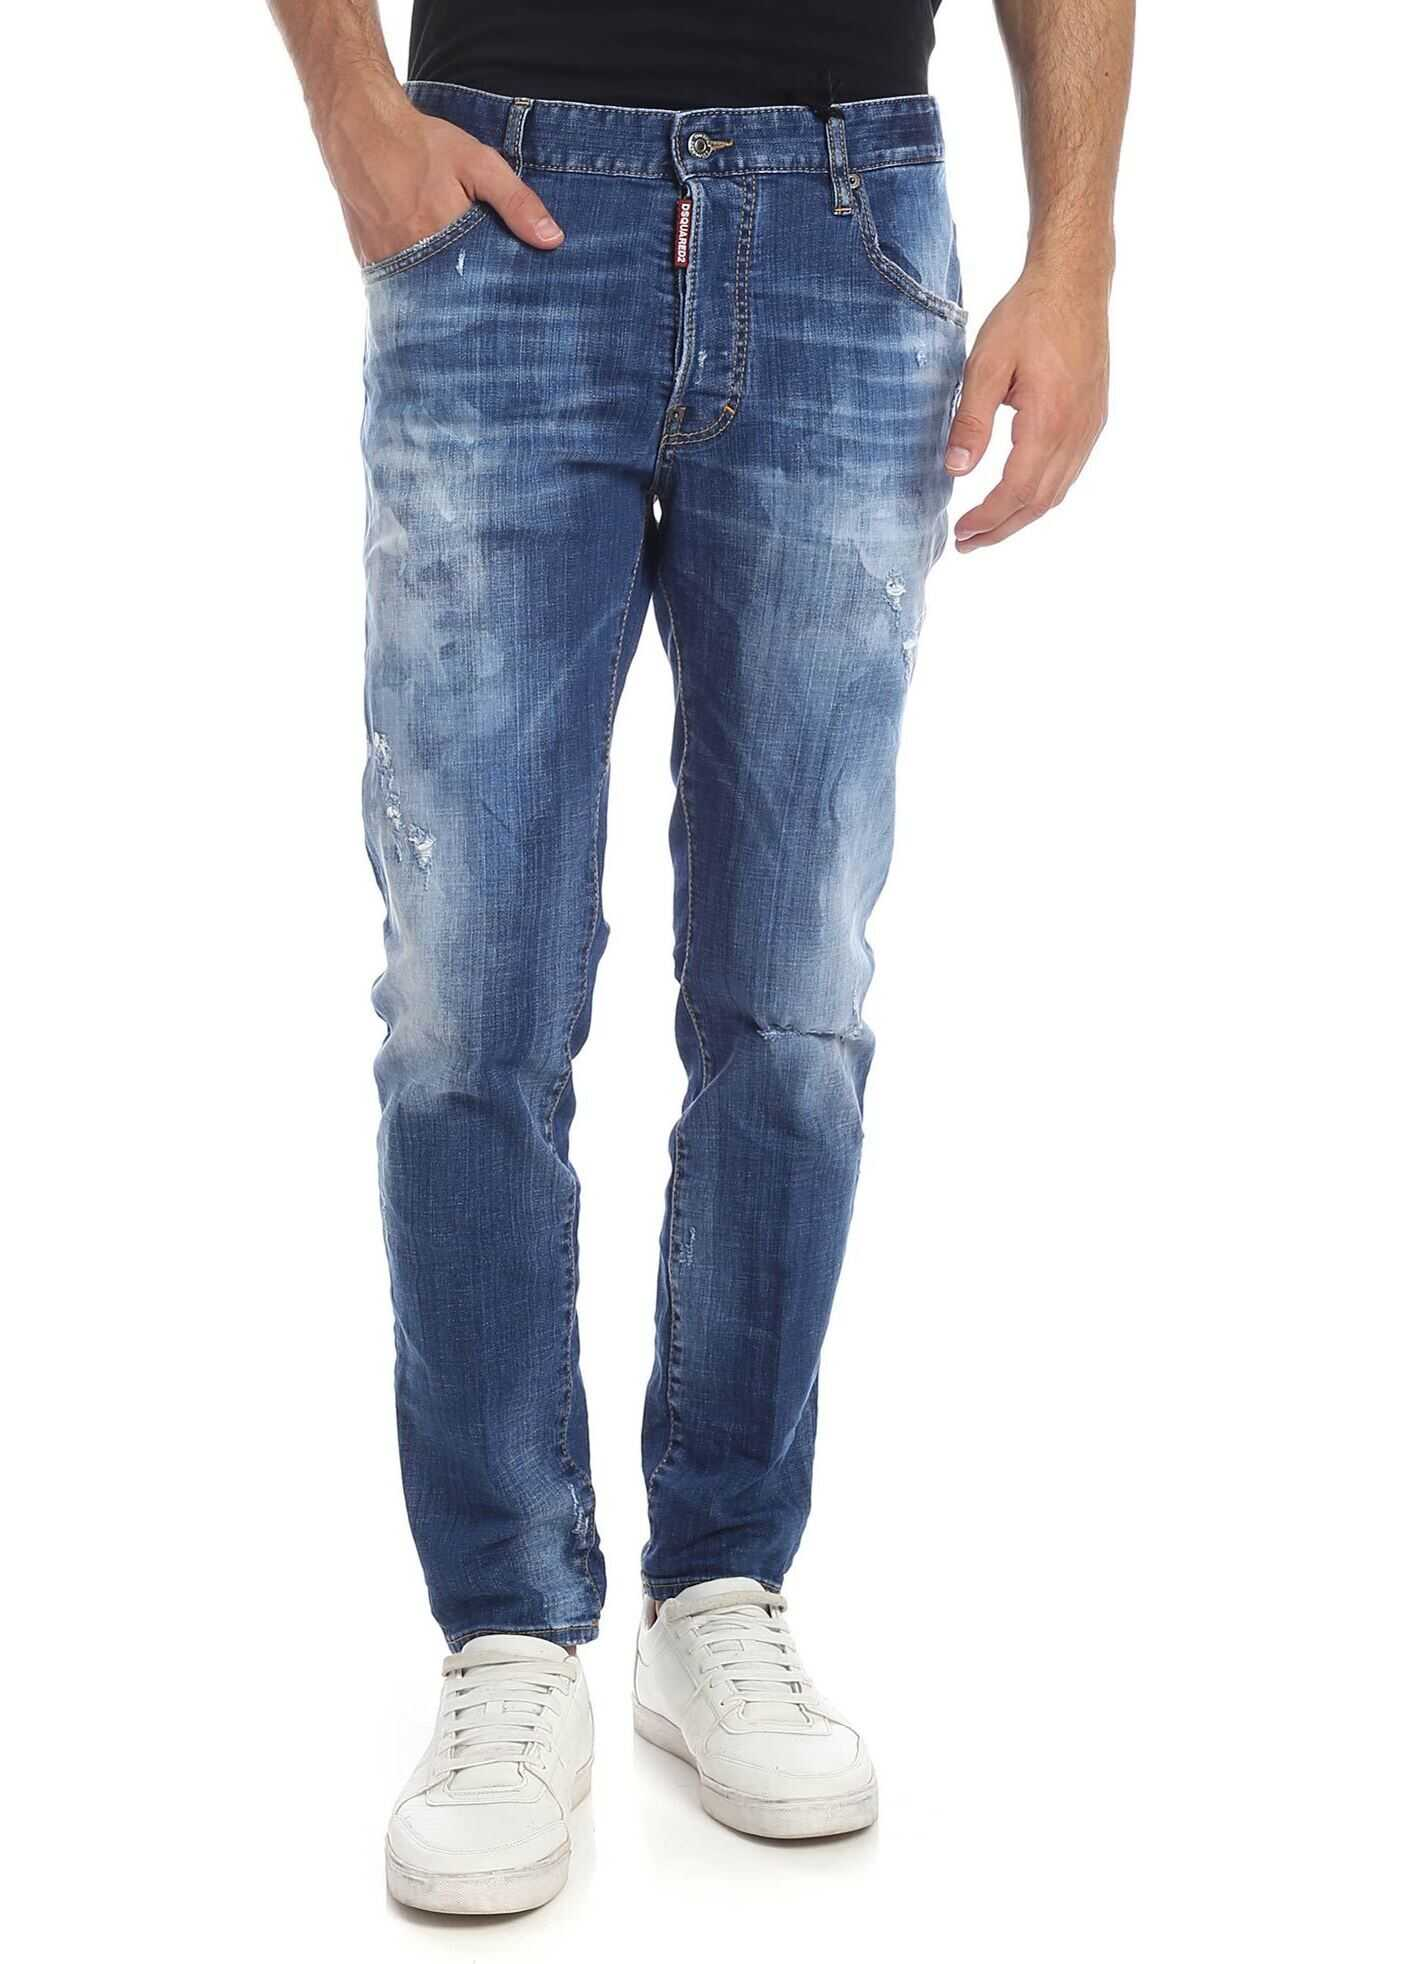 DSQUARED2 Skater Jeans In Blue With Destroyed Effect Blue